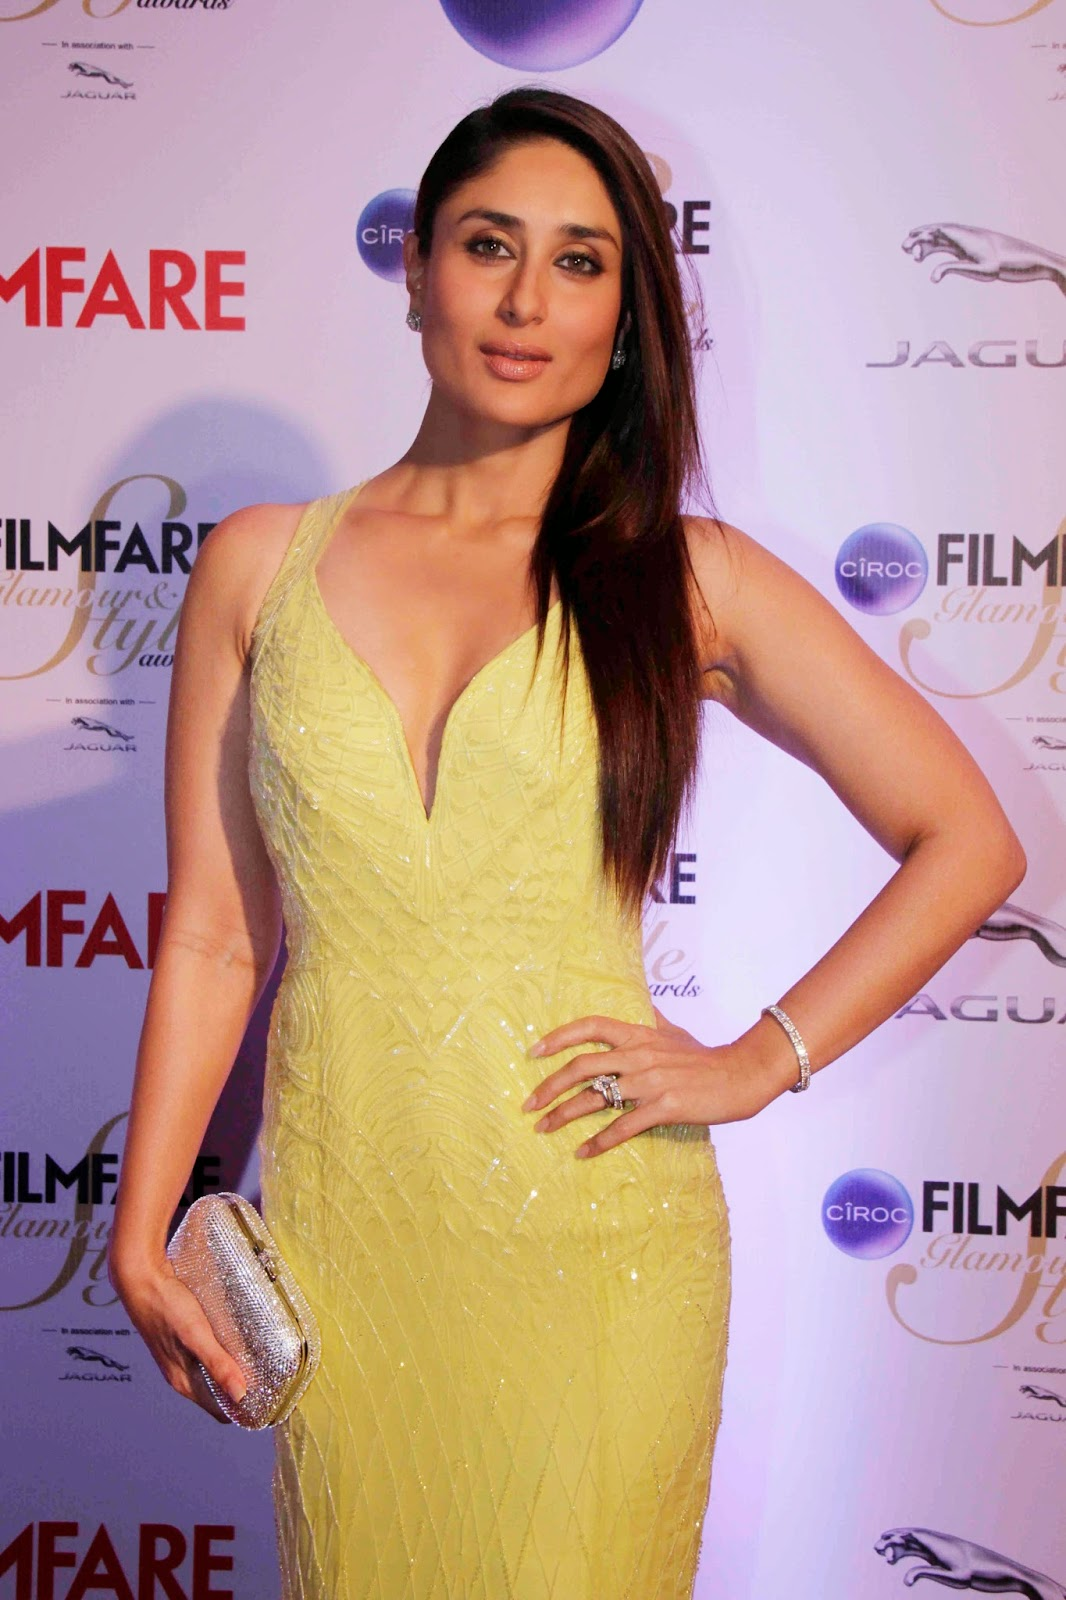 Kareena Kapoor Latest Spicy Hot Photos In Yellow Dress